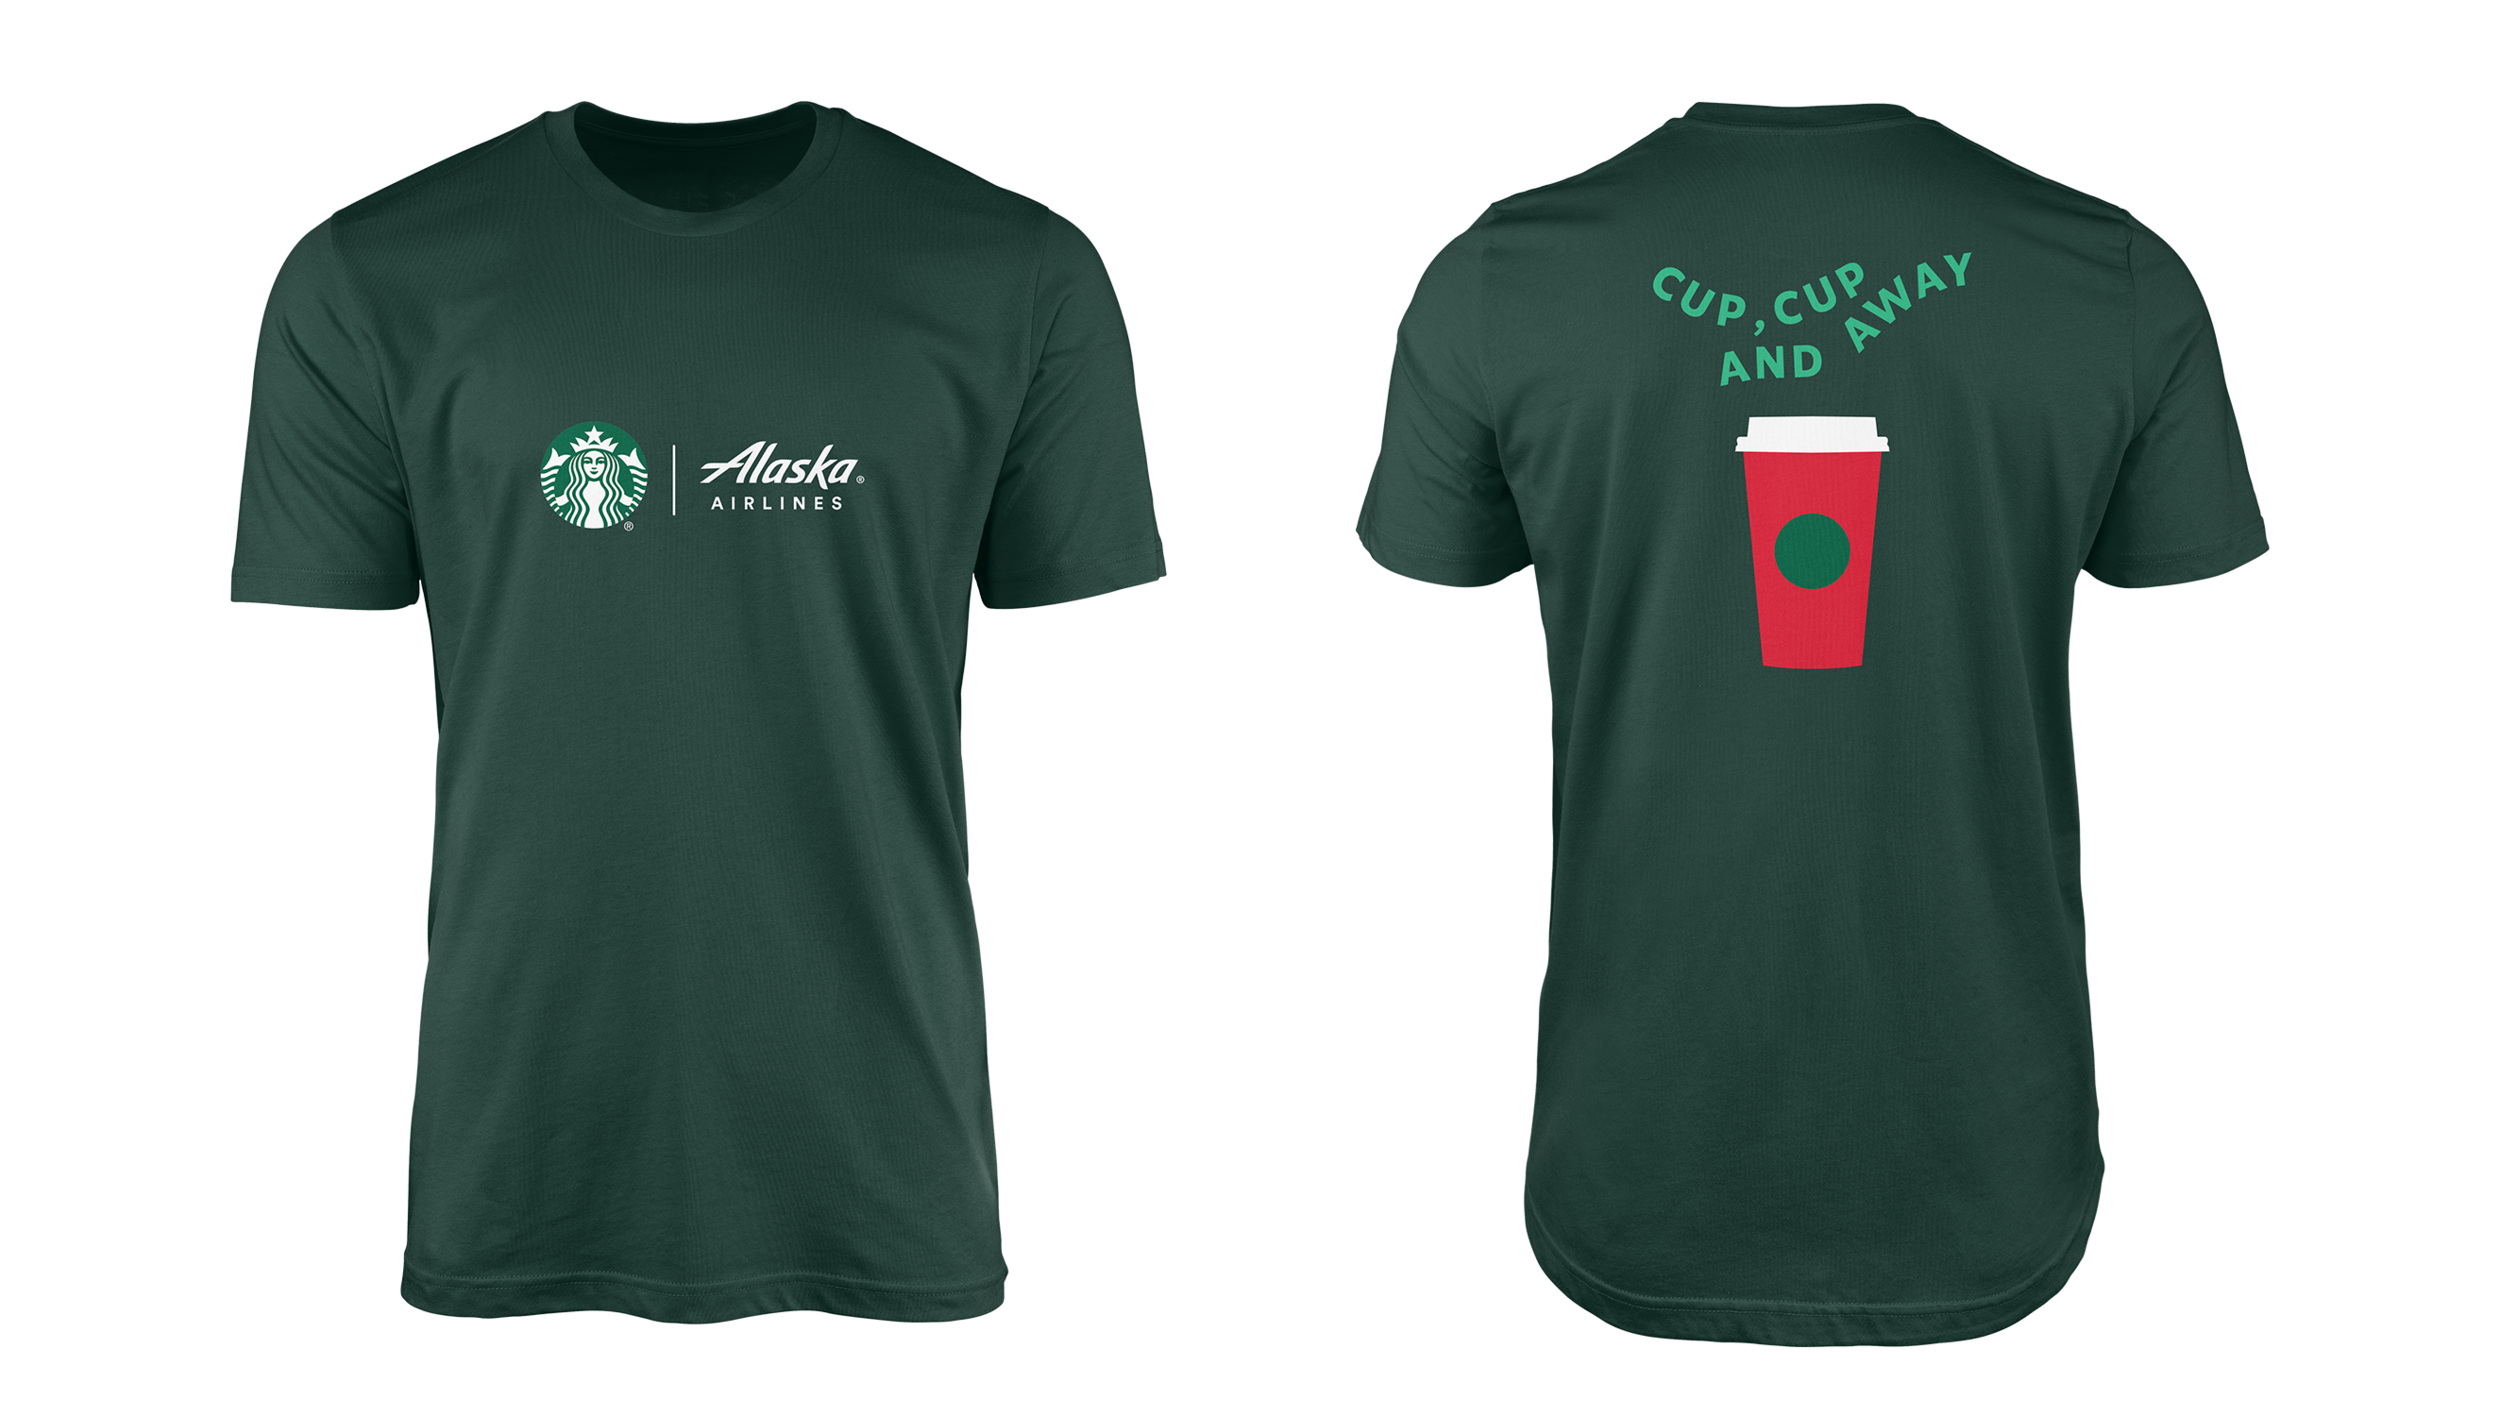 Alaska-Air_Starbucks_Tshirts.png